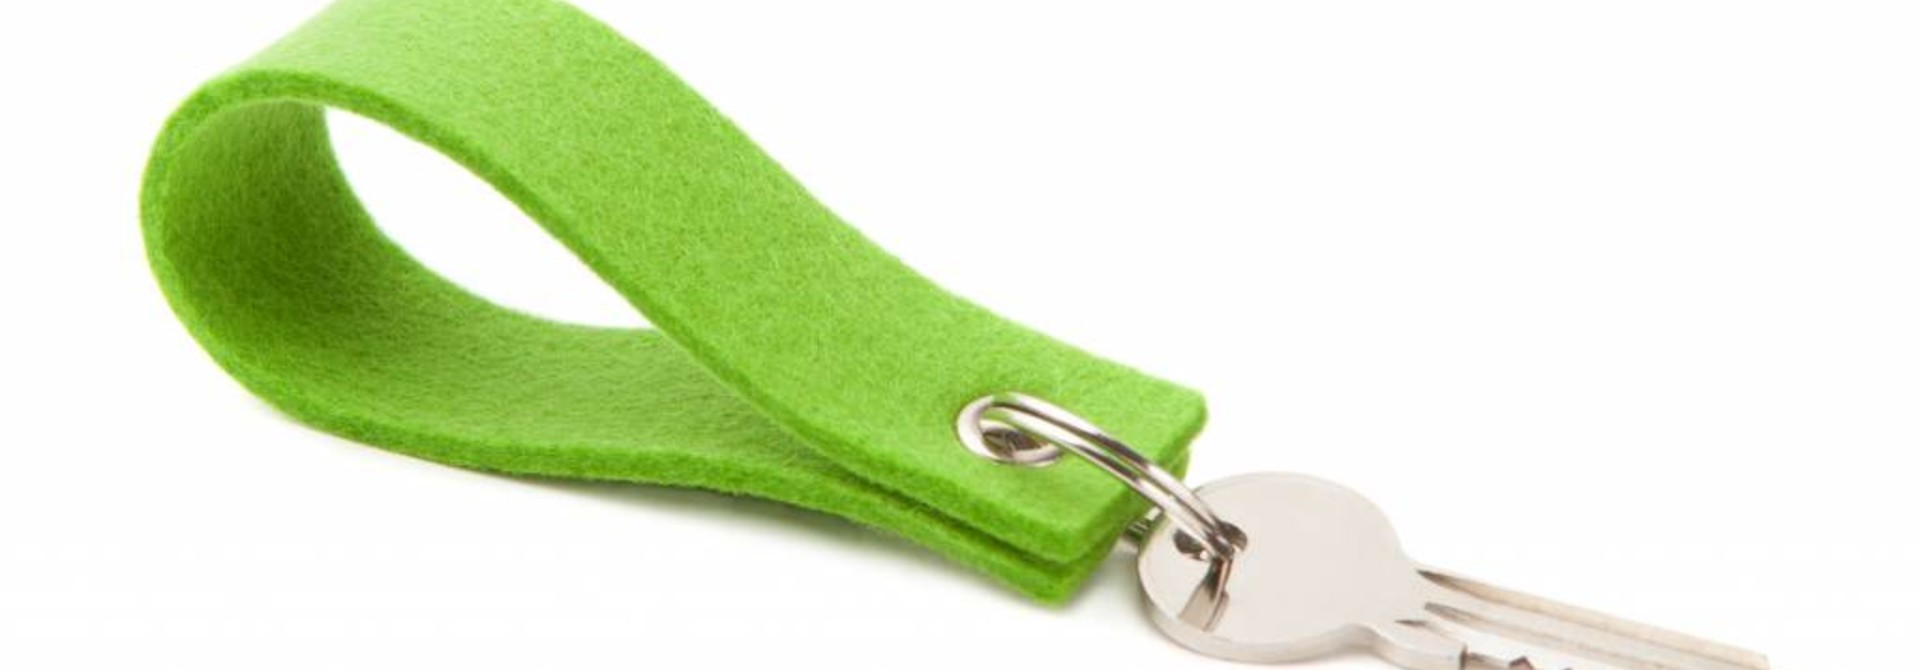 Keychain Bright-Green square